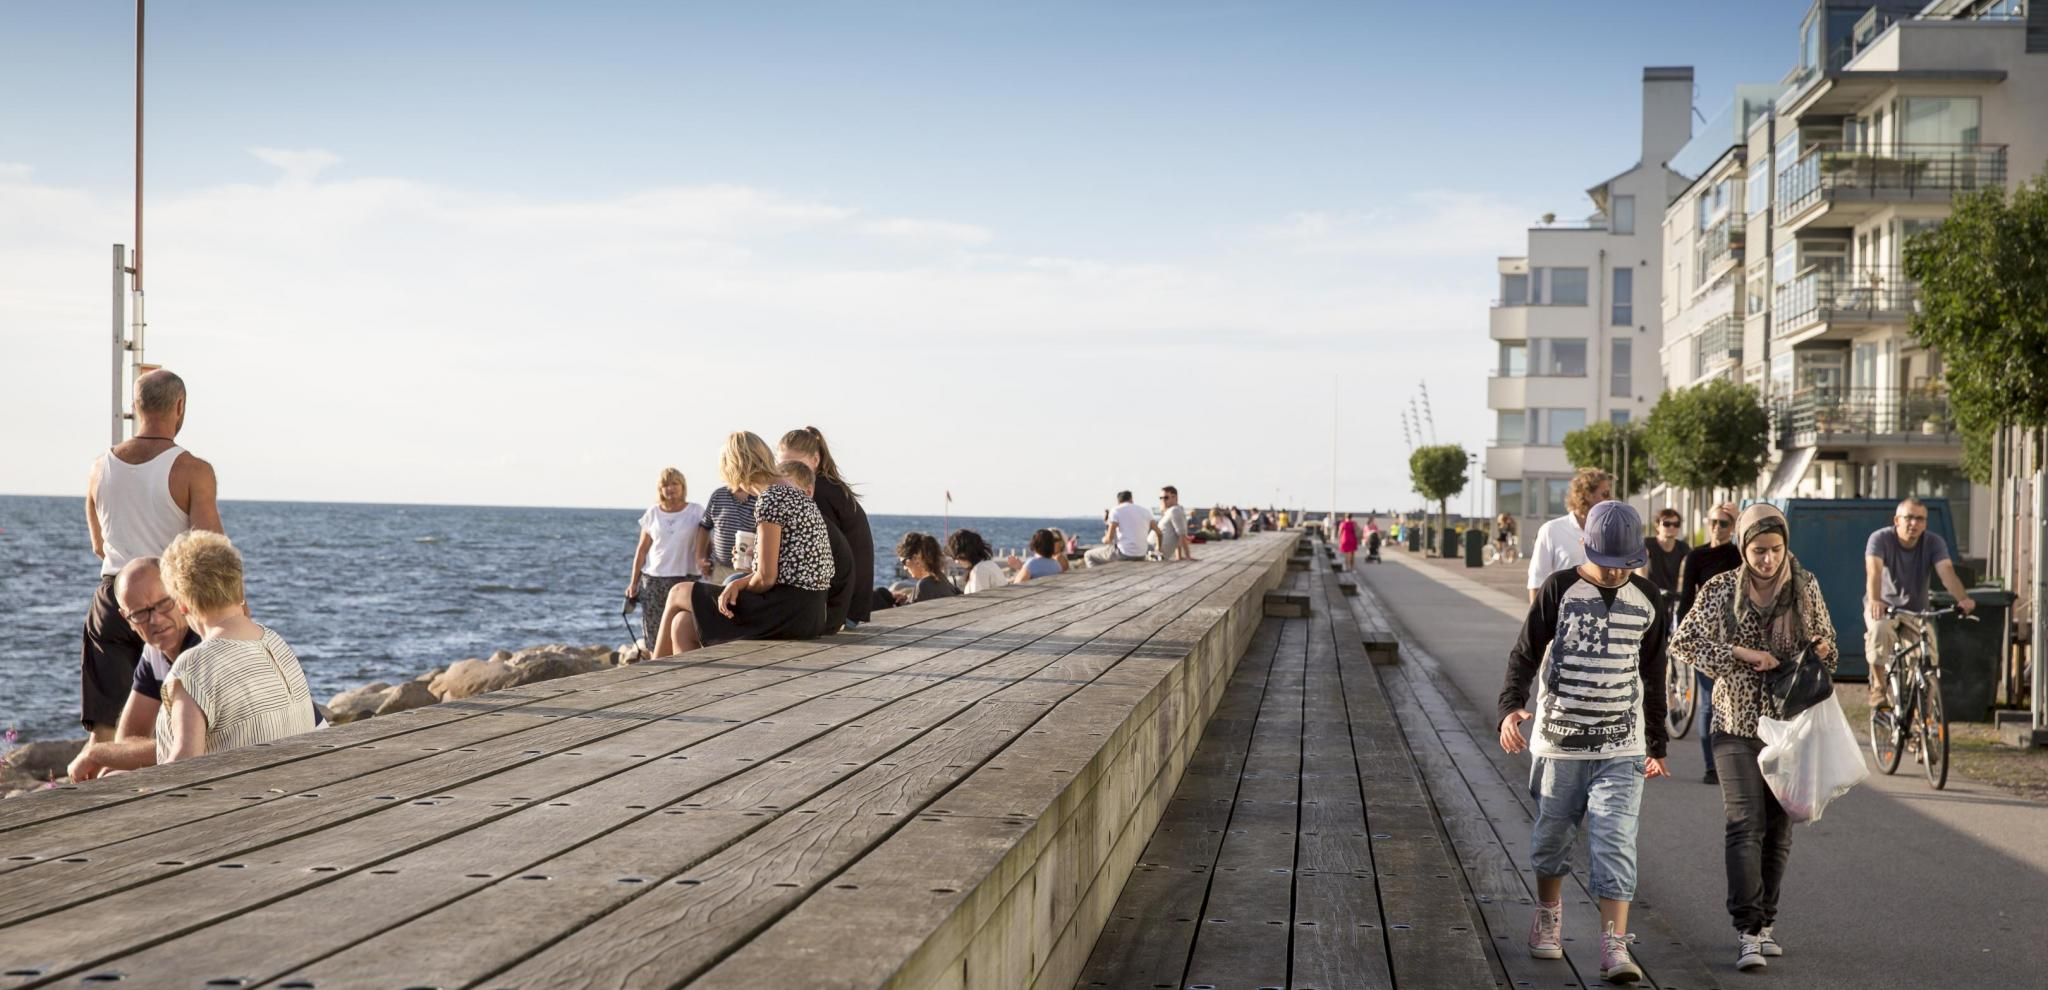 Boardwalk in the west port in Malmö © Carolina Romare